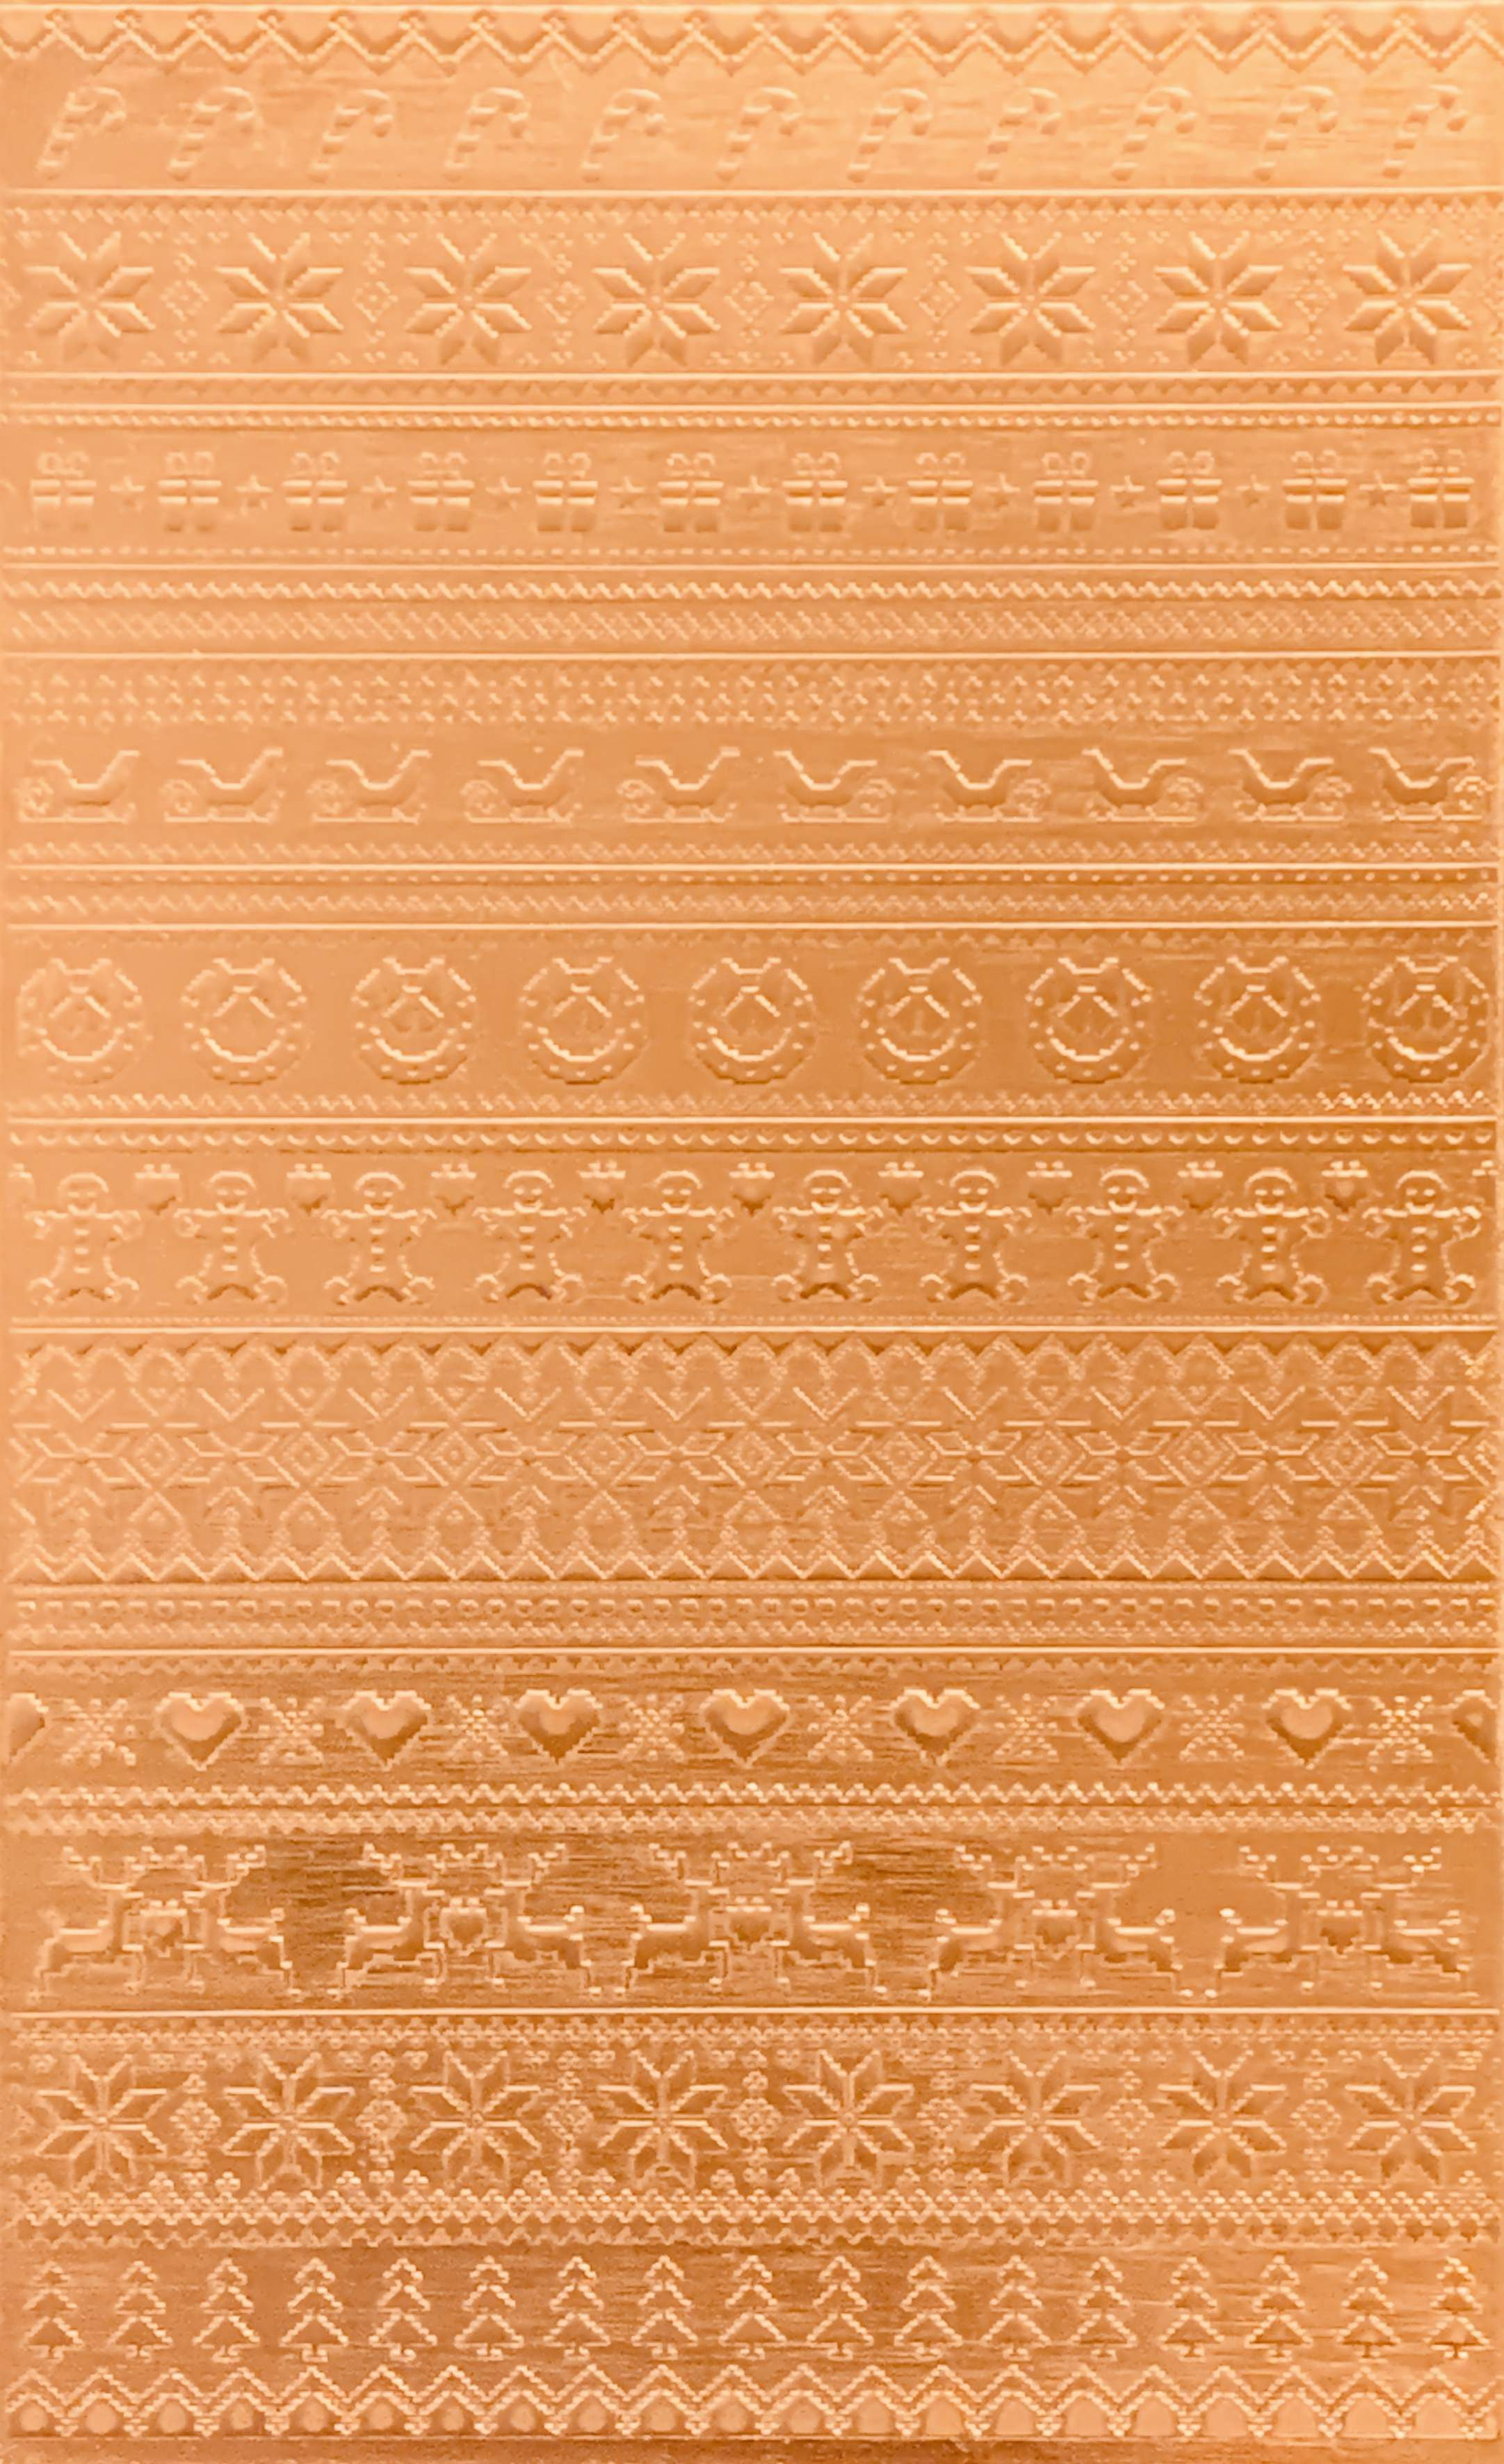 Christmas Sweater Copper Pattern Pressing 2 1 2 X 4 Metal Maven Copper Pattern Copper Sheets